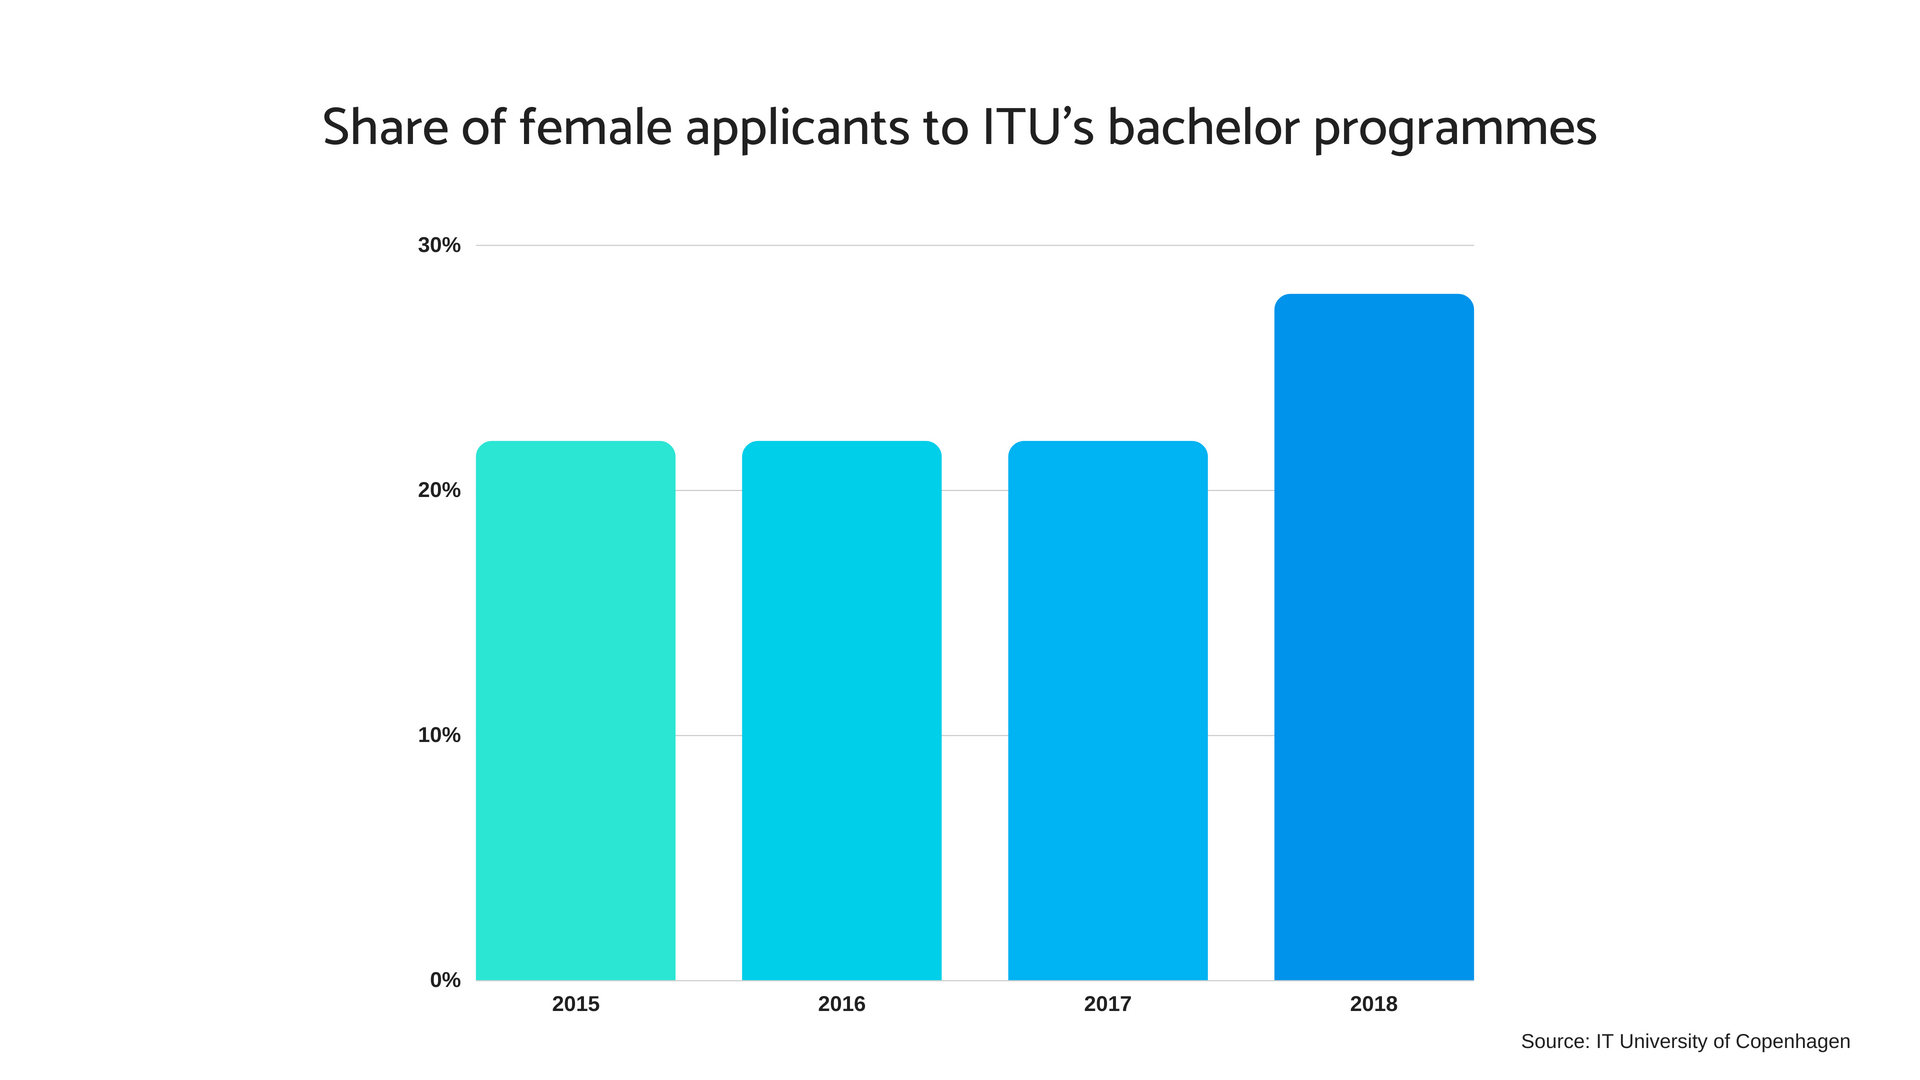 Share of female applicants to ITUs bachelor programmes.